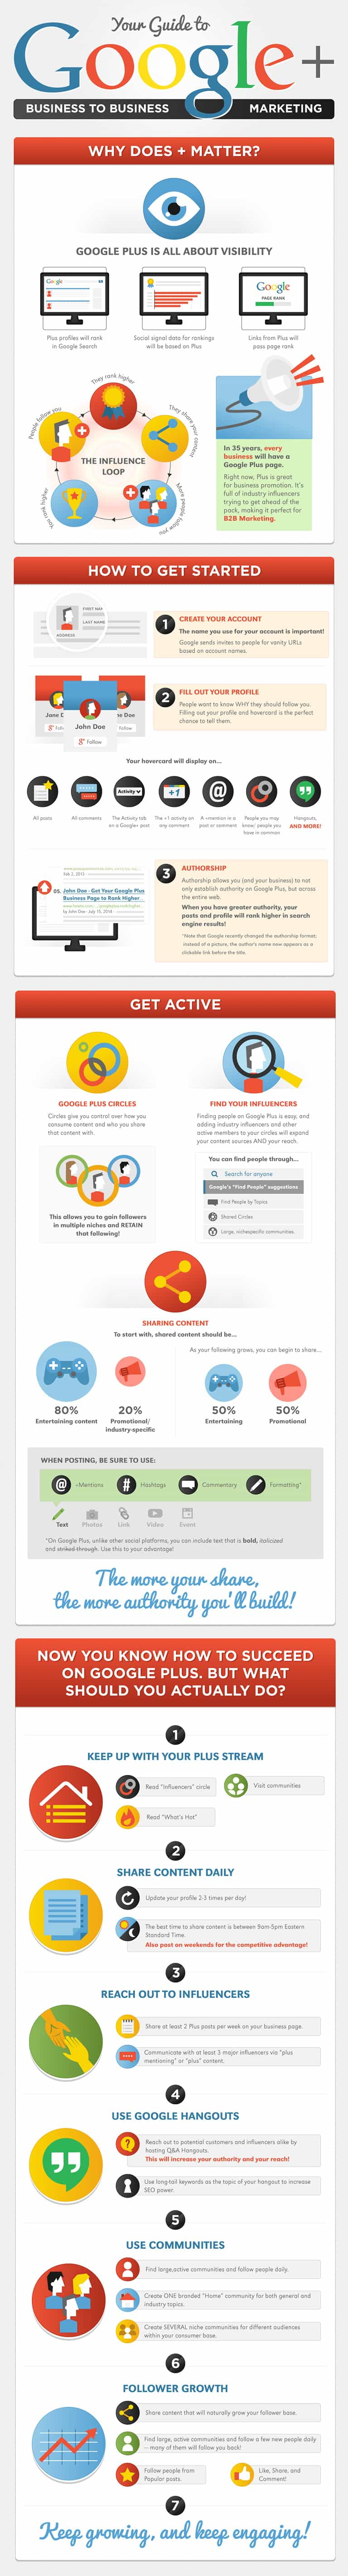 Amplifying B2B Marketing Content with Google Plus